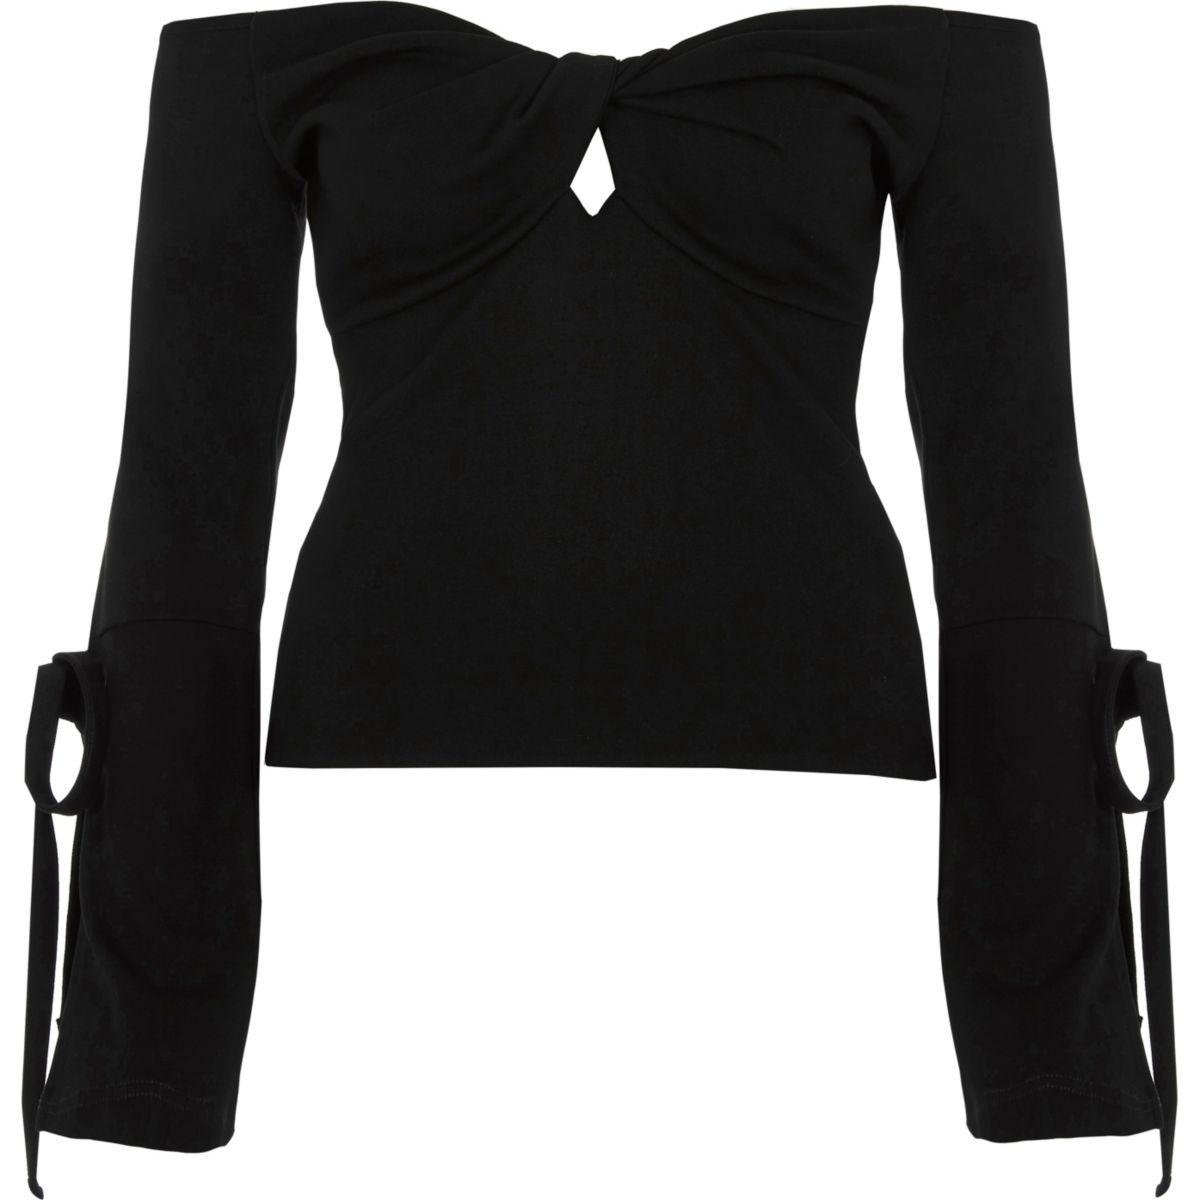 Black bardot knot front long tie sleeve top